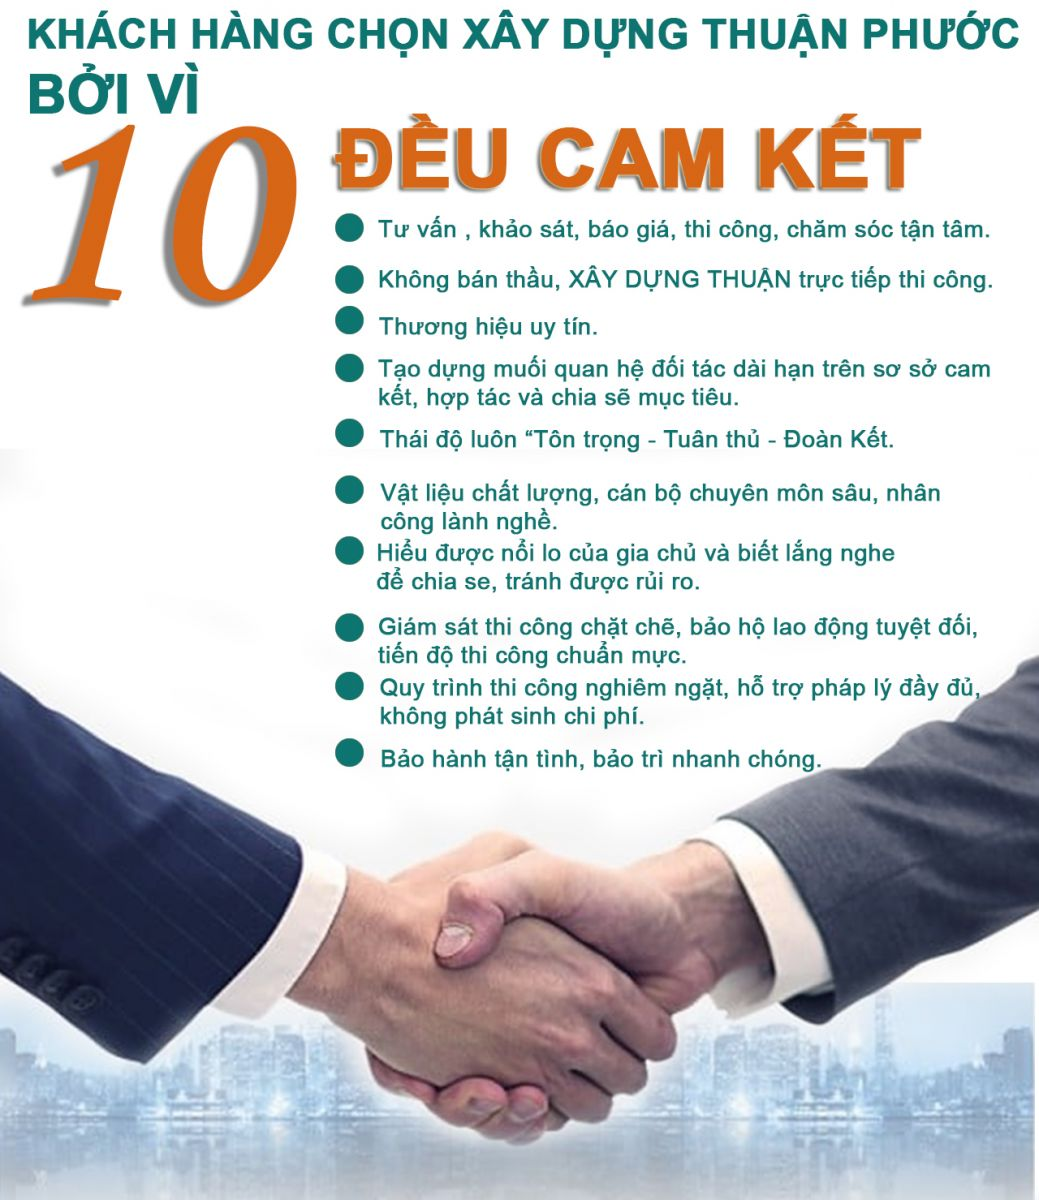 Cam kết xây dựng